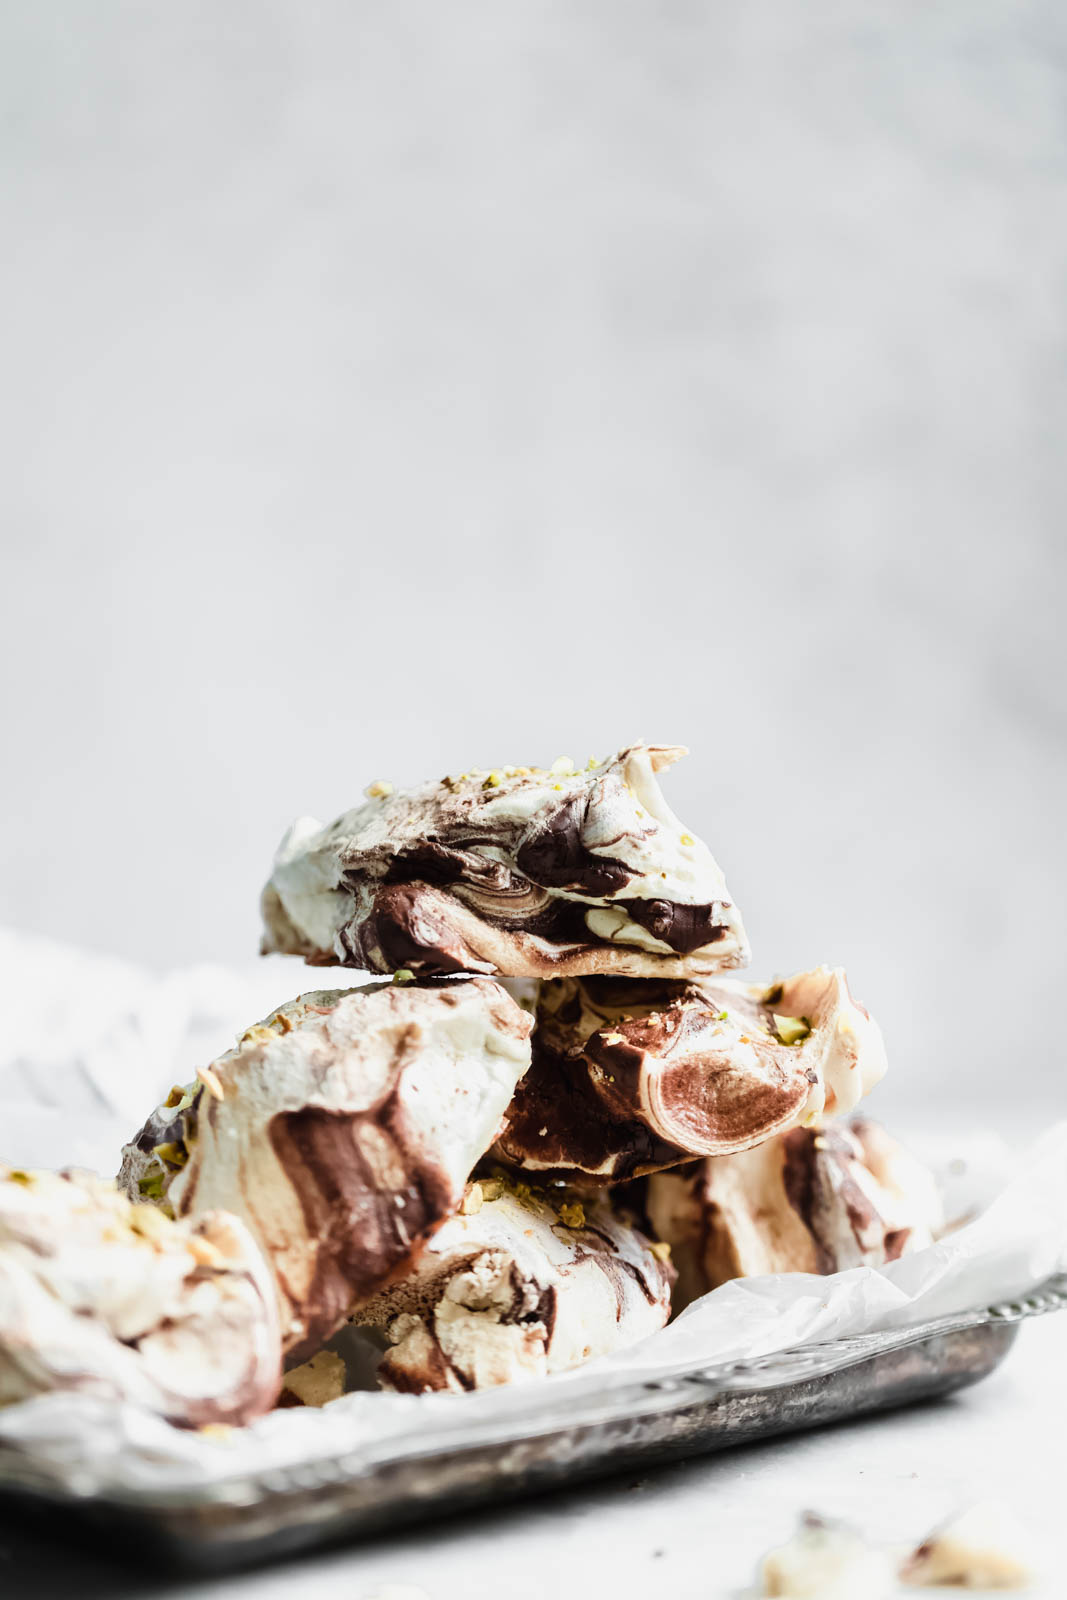 The easiest chocolate swirled spoon meringues that you literally spoon onto a baking sheet. Top 'em with crumbled pistachios, bake, and done!